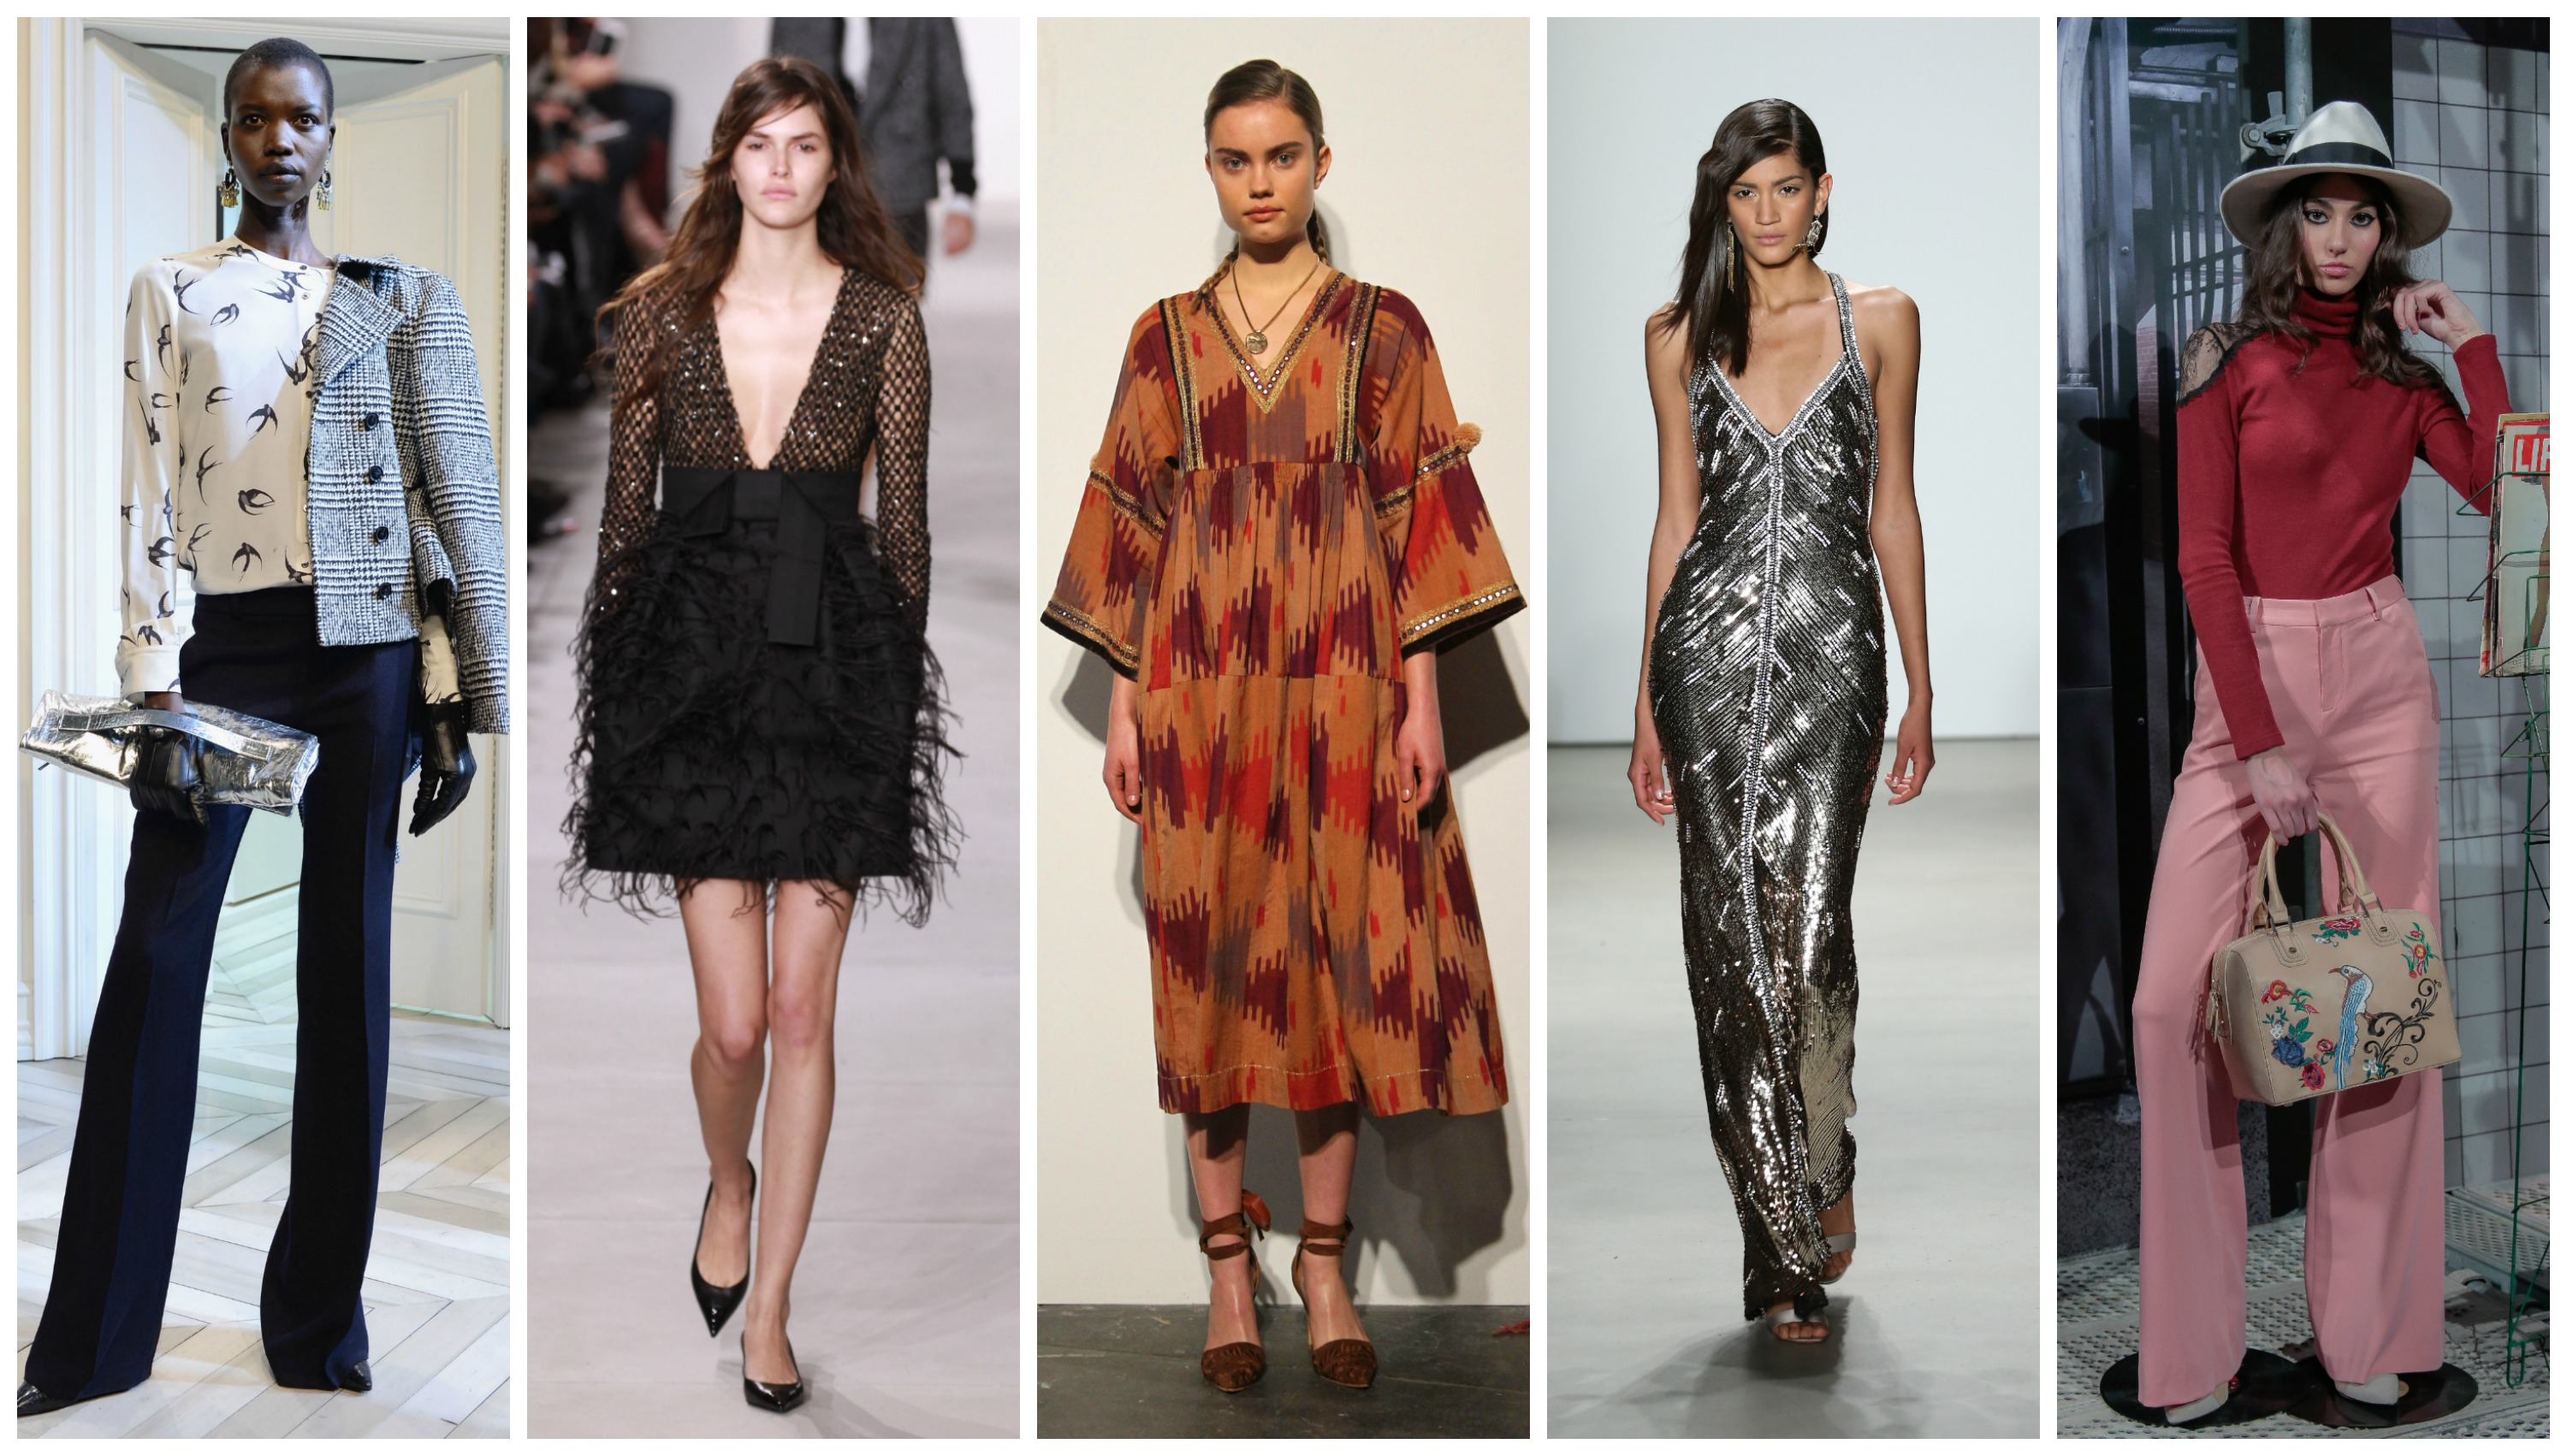 trend report from NYFW